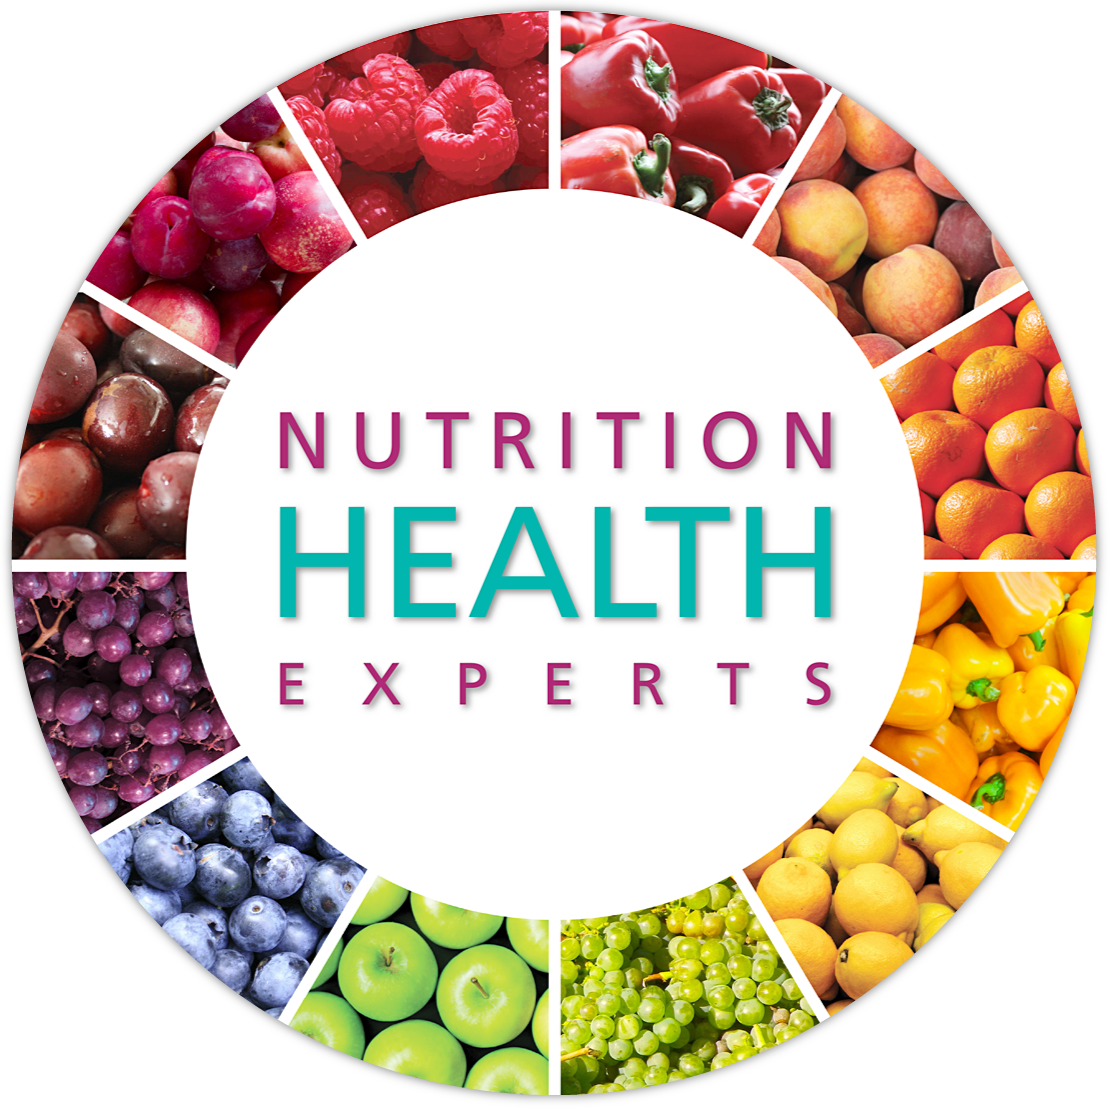 Nutrition Health Experts